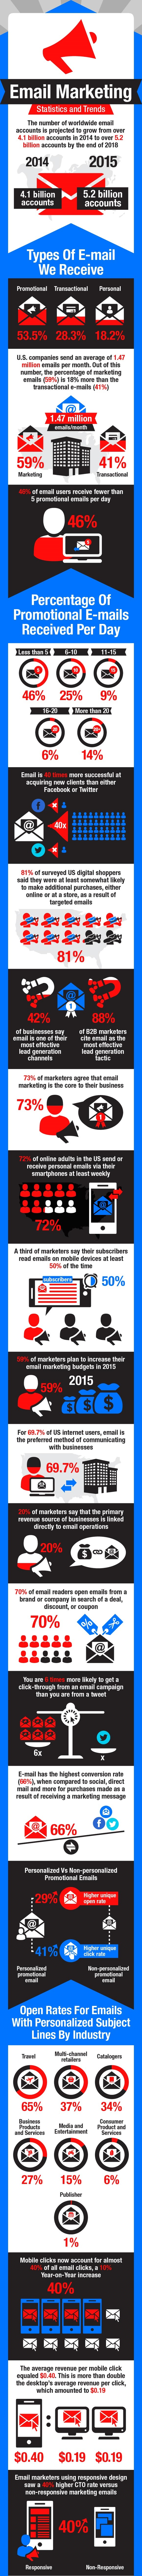 email marketing statistics and trends